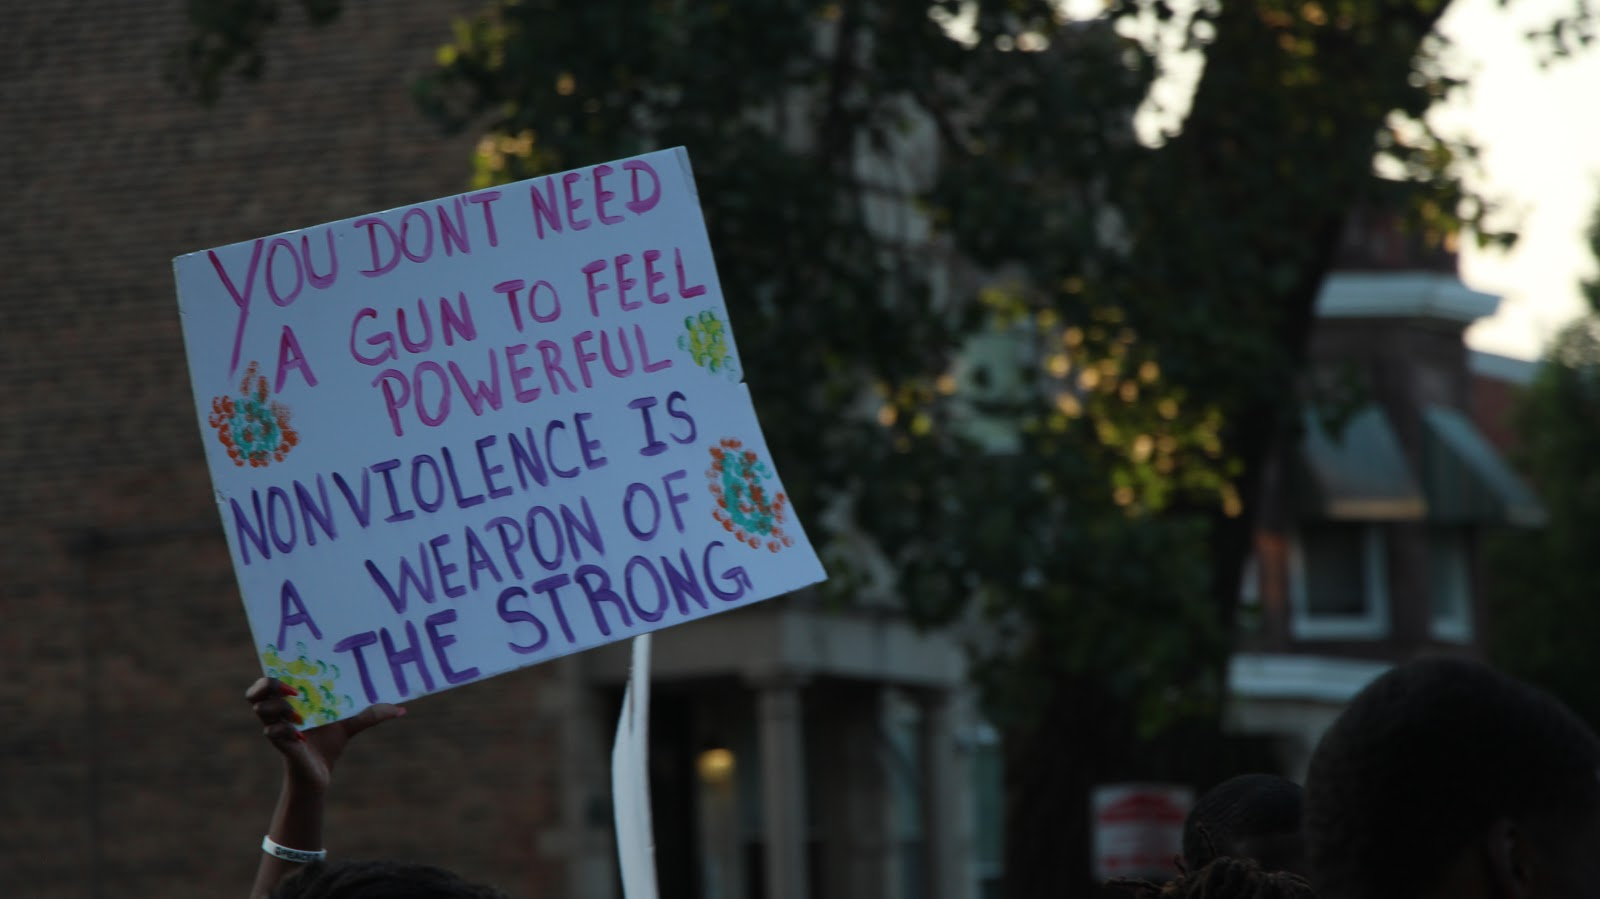 Anti-violence sign at 60632 Peace Gathering. Photo by Tyrese Pough